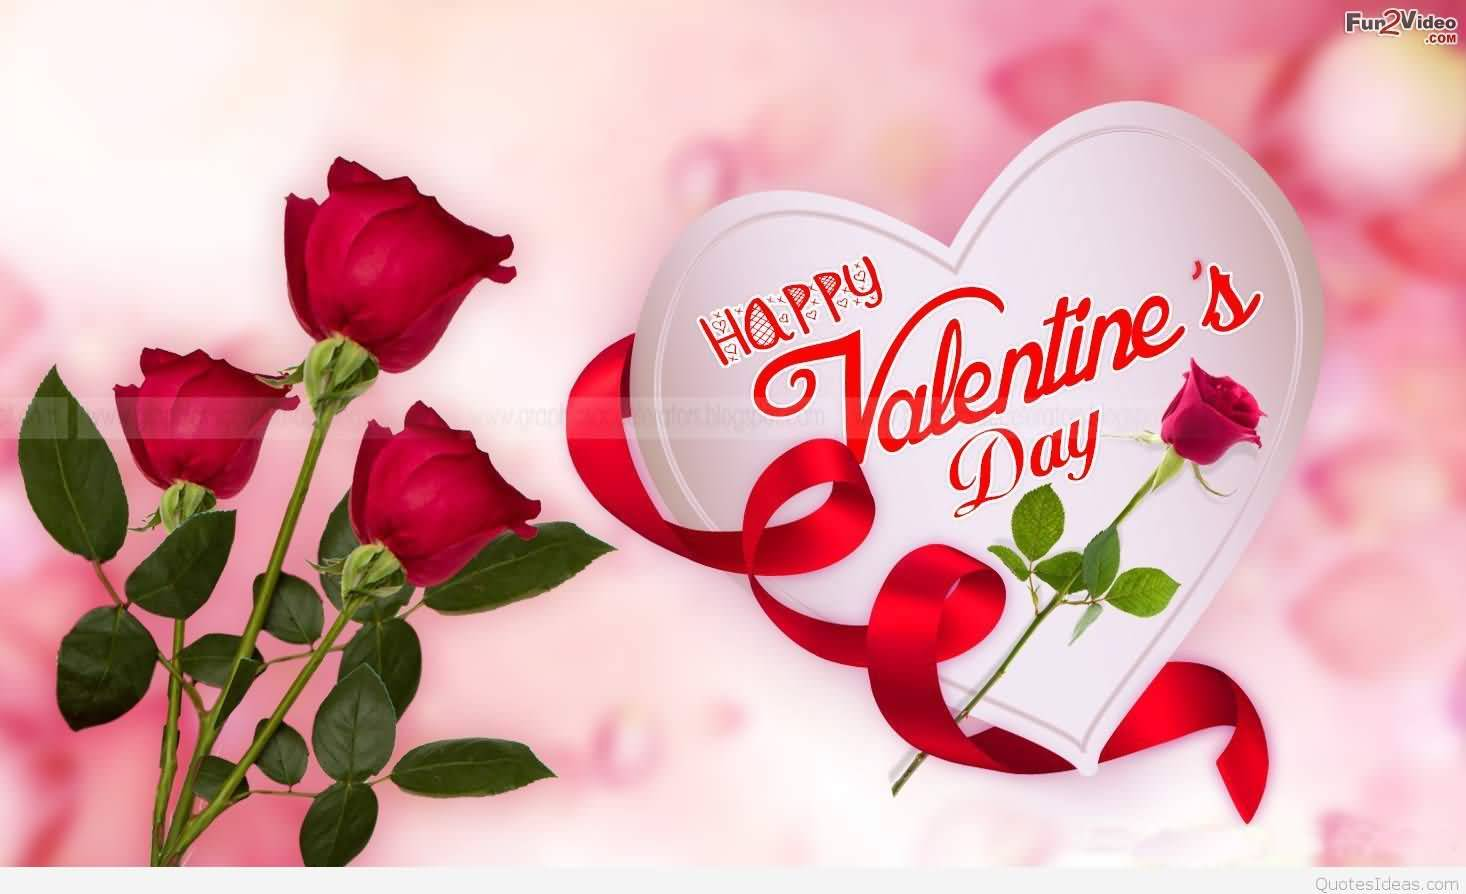 70 best happy valentine's day 2017 wish pictures and images, Ideas